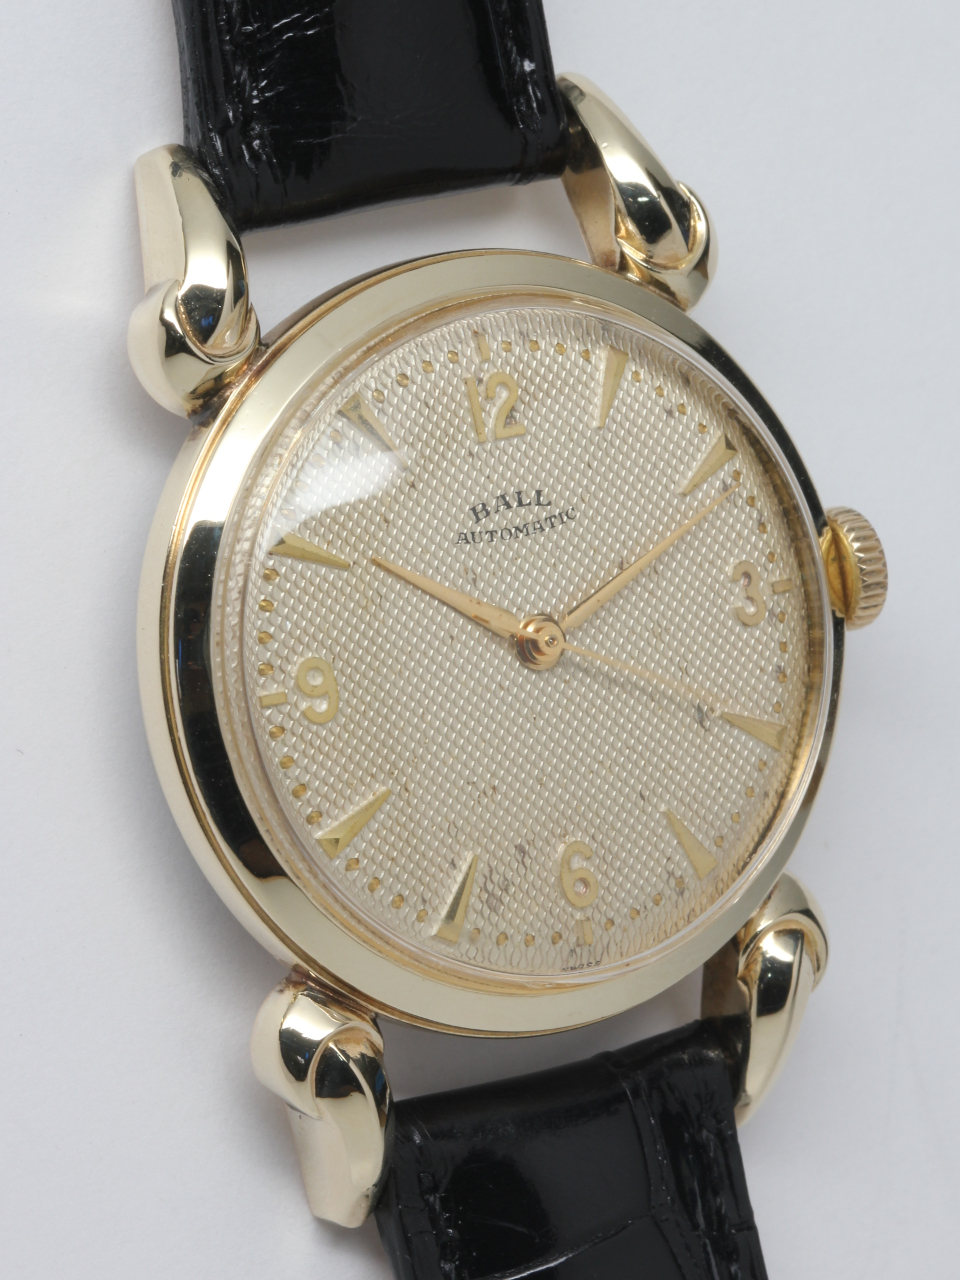 Ball 14K YG Automatic circa 1950's